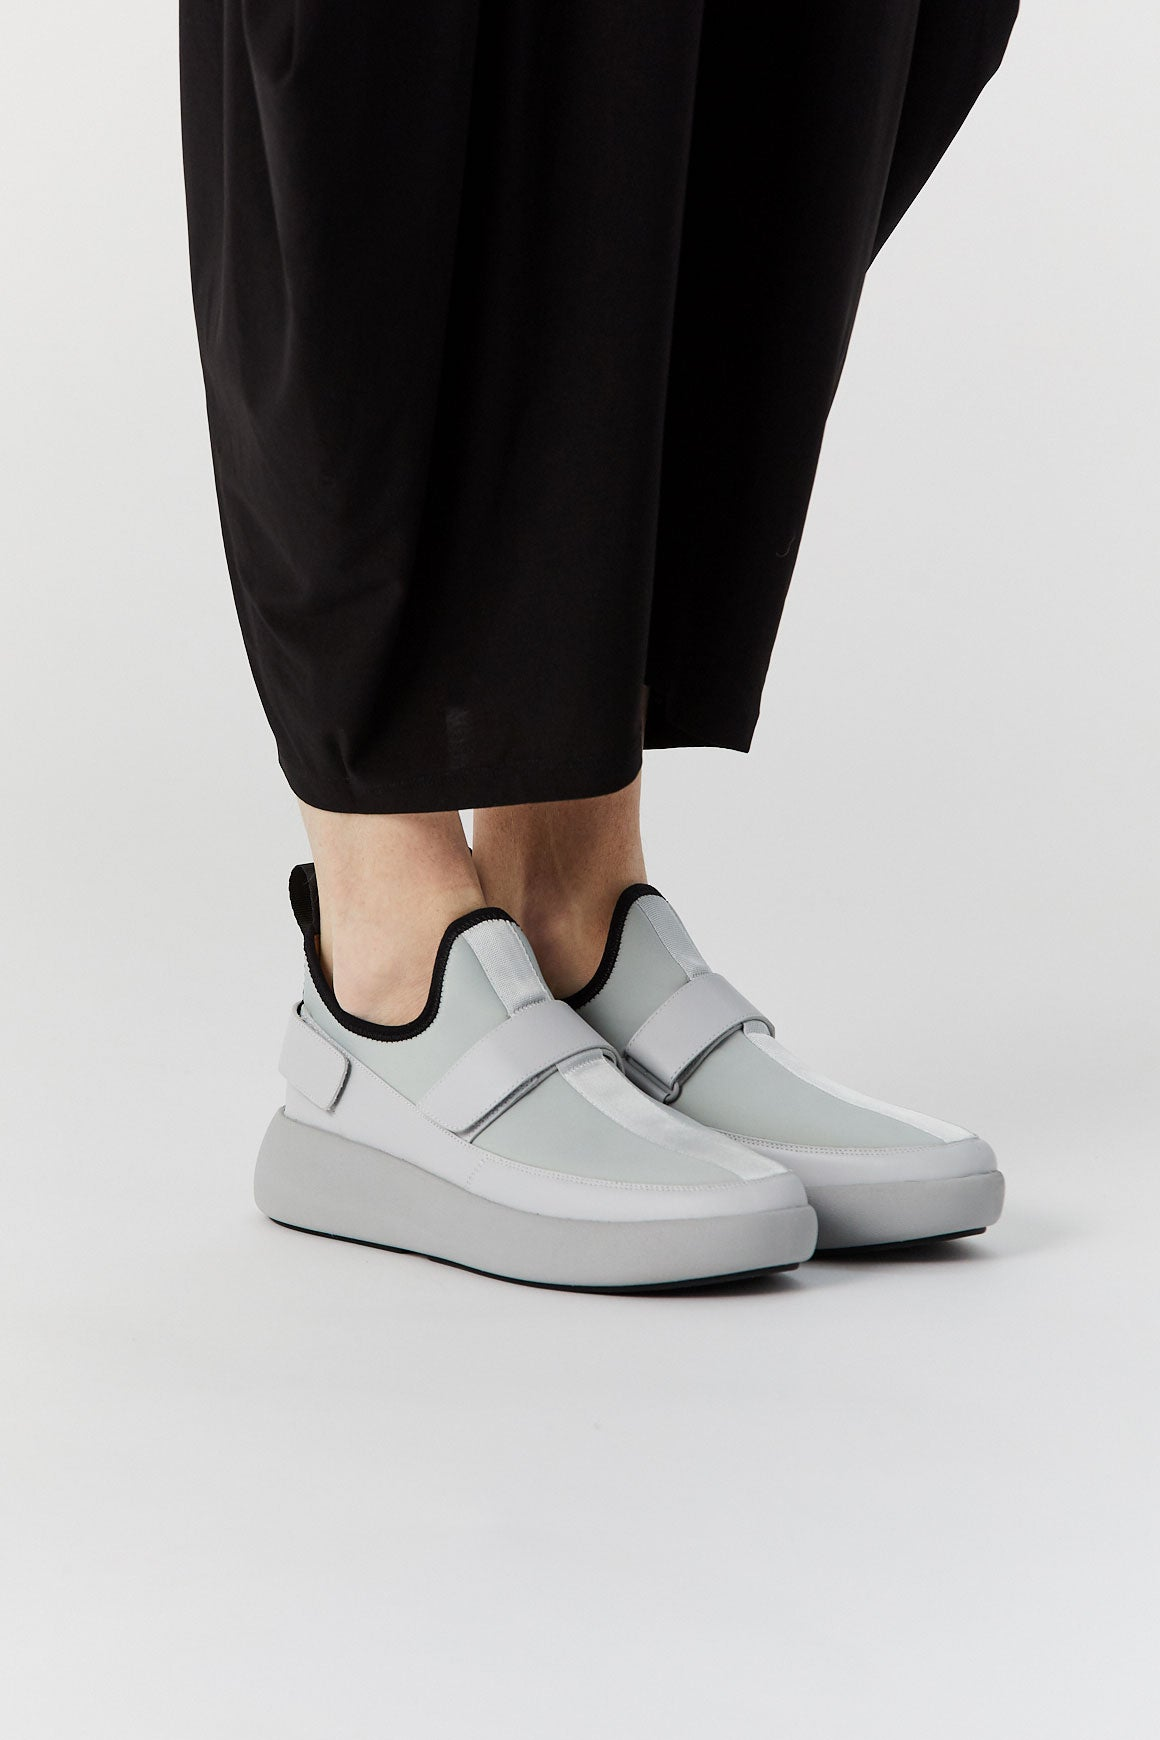 Issey Miyake - United Nude x Issey Miyake Step Solid, Light Grey